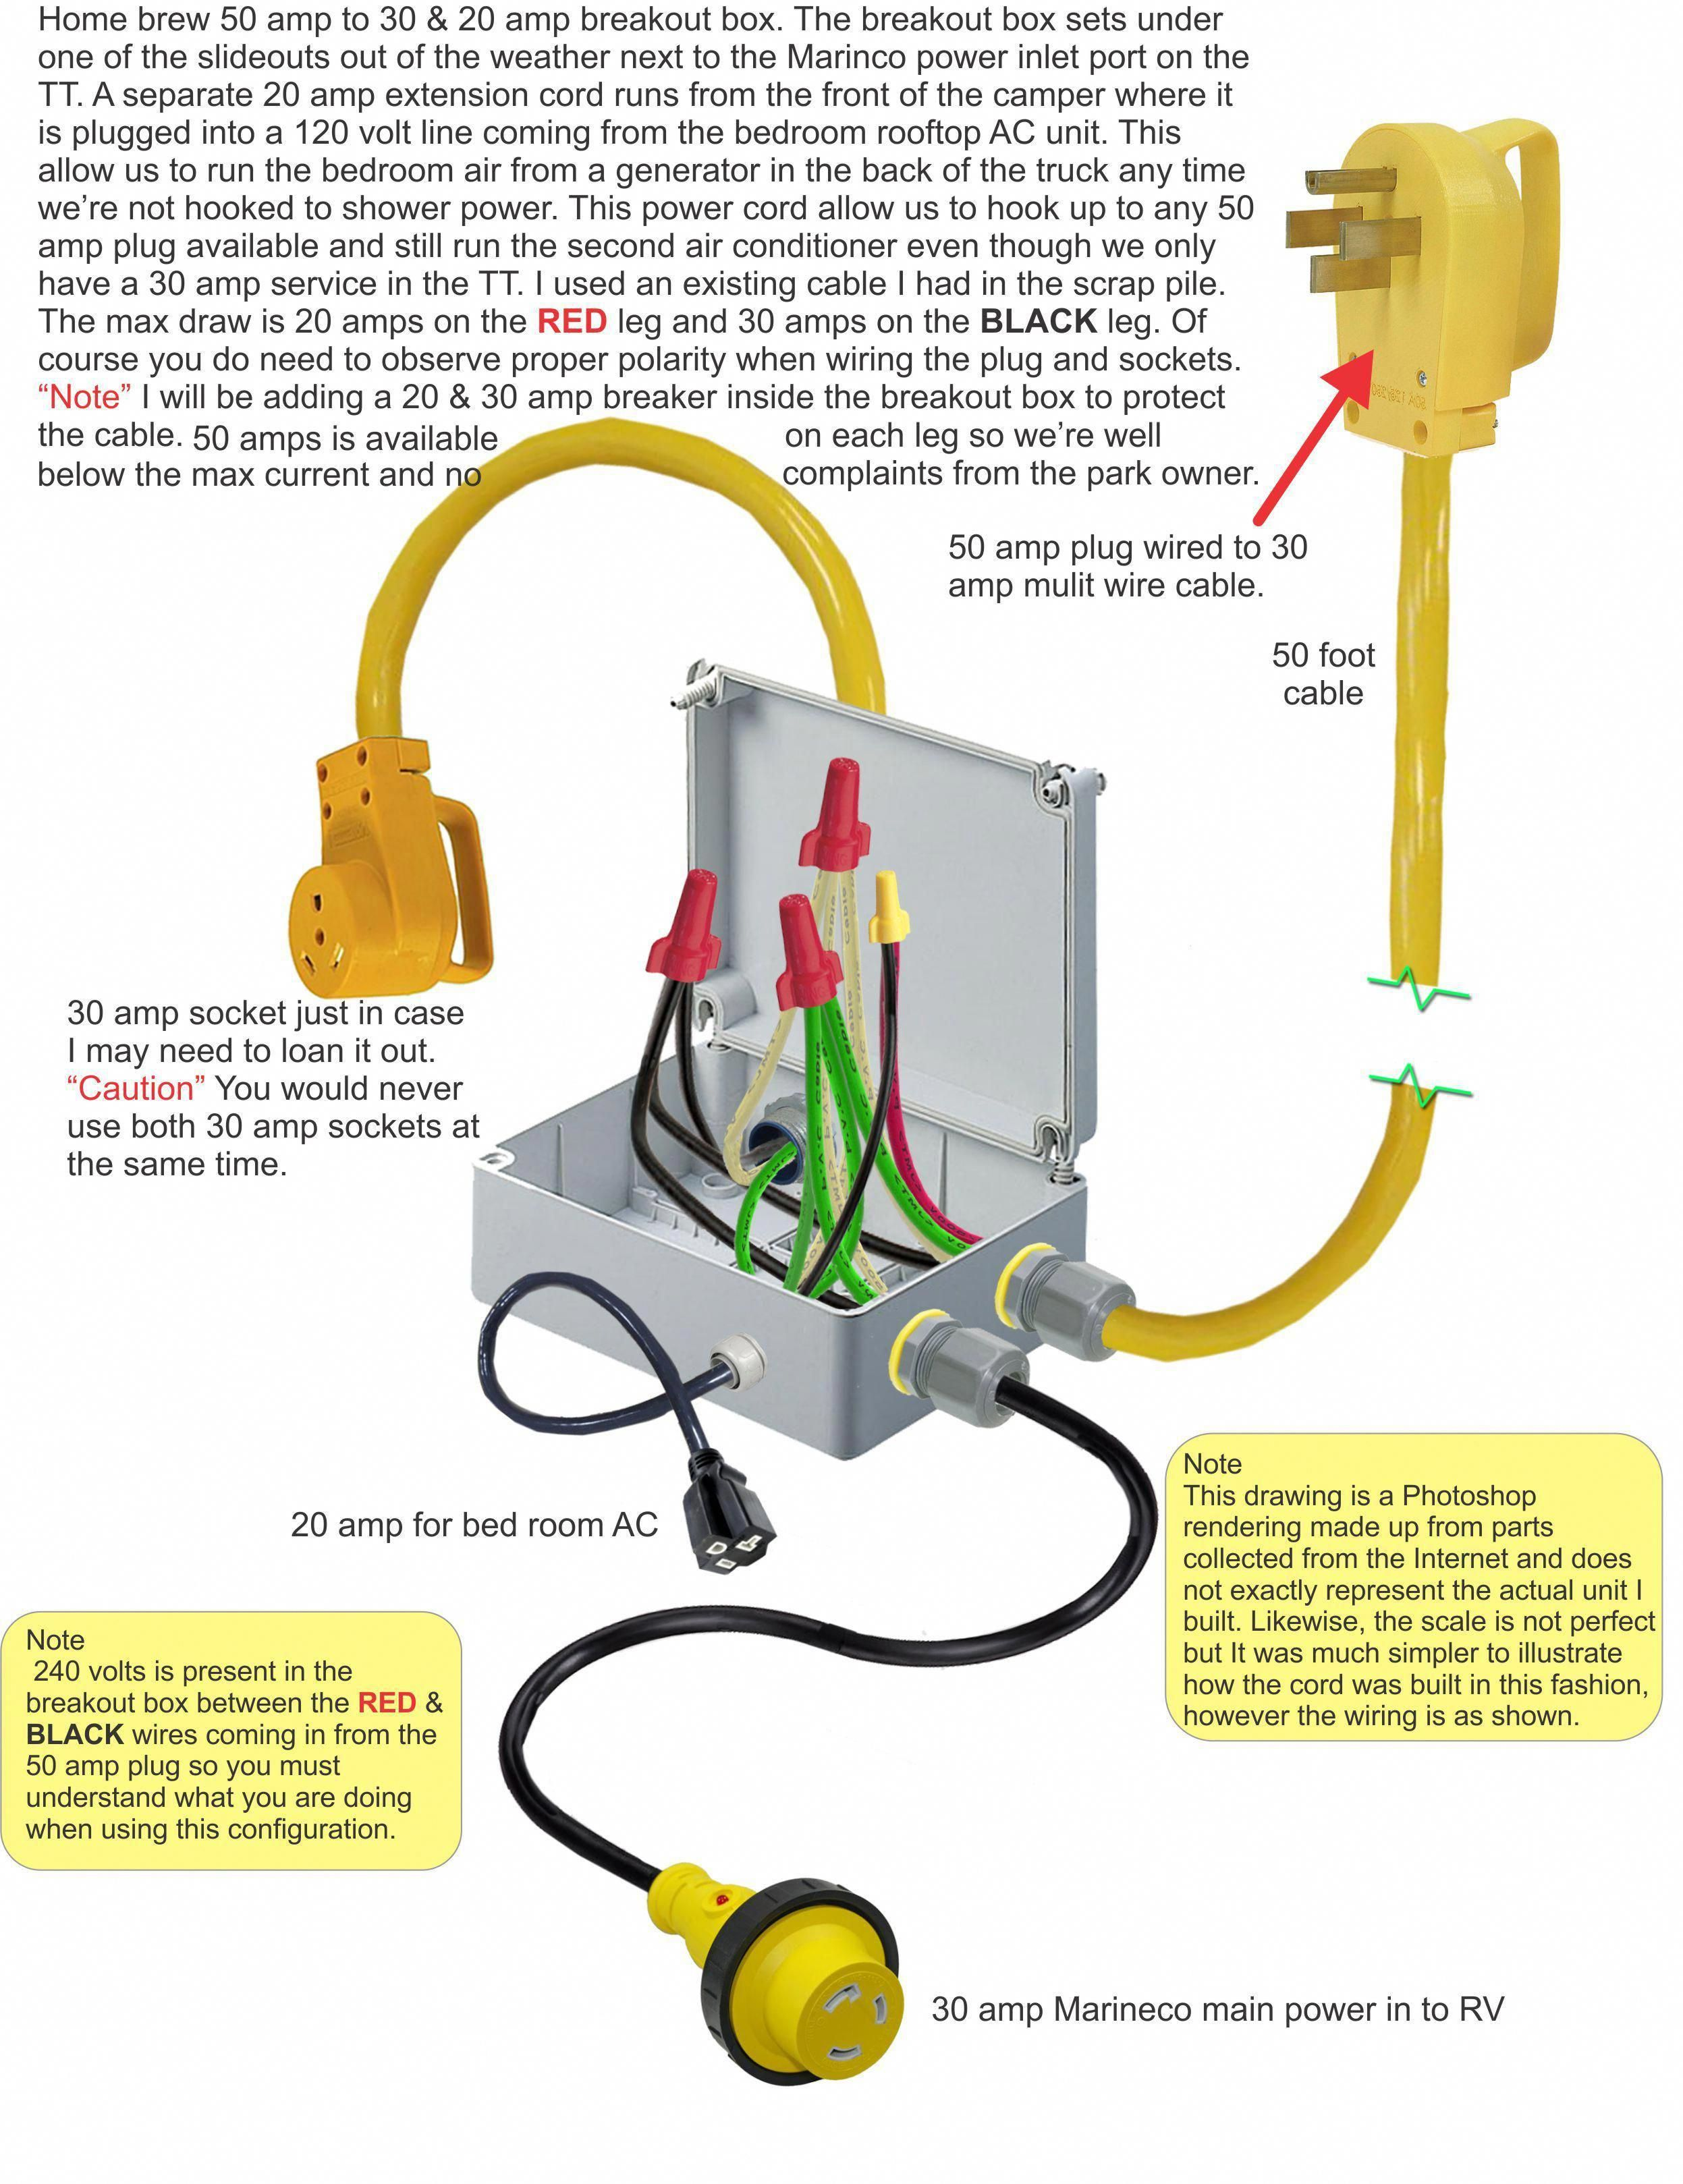 50 Amp RV Plug Wiring Diagram * More details can be found by ...  Amp Rv Wiring Diagram Trailer on